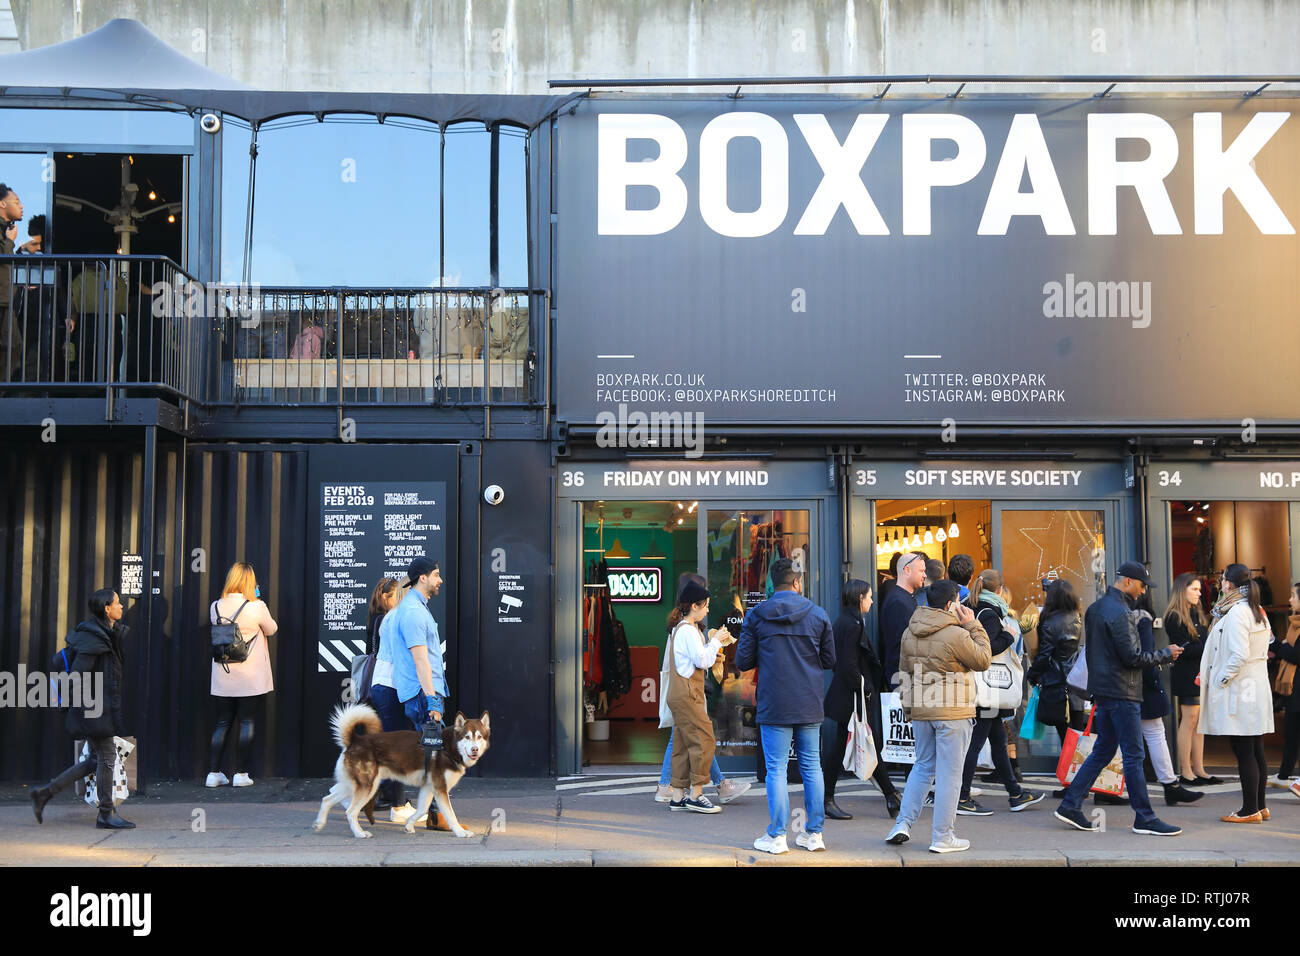 19f78dcf2c1a1 Shoreditch Boxpark in Bethnal Green, a shipping container pop-up mall, for  fashion & lifestyle, shops & cafes, London, UK